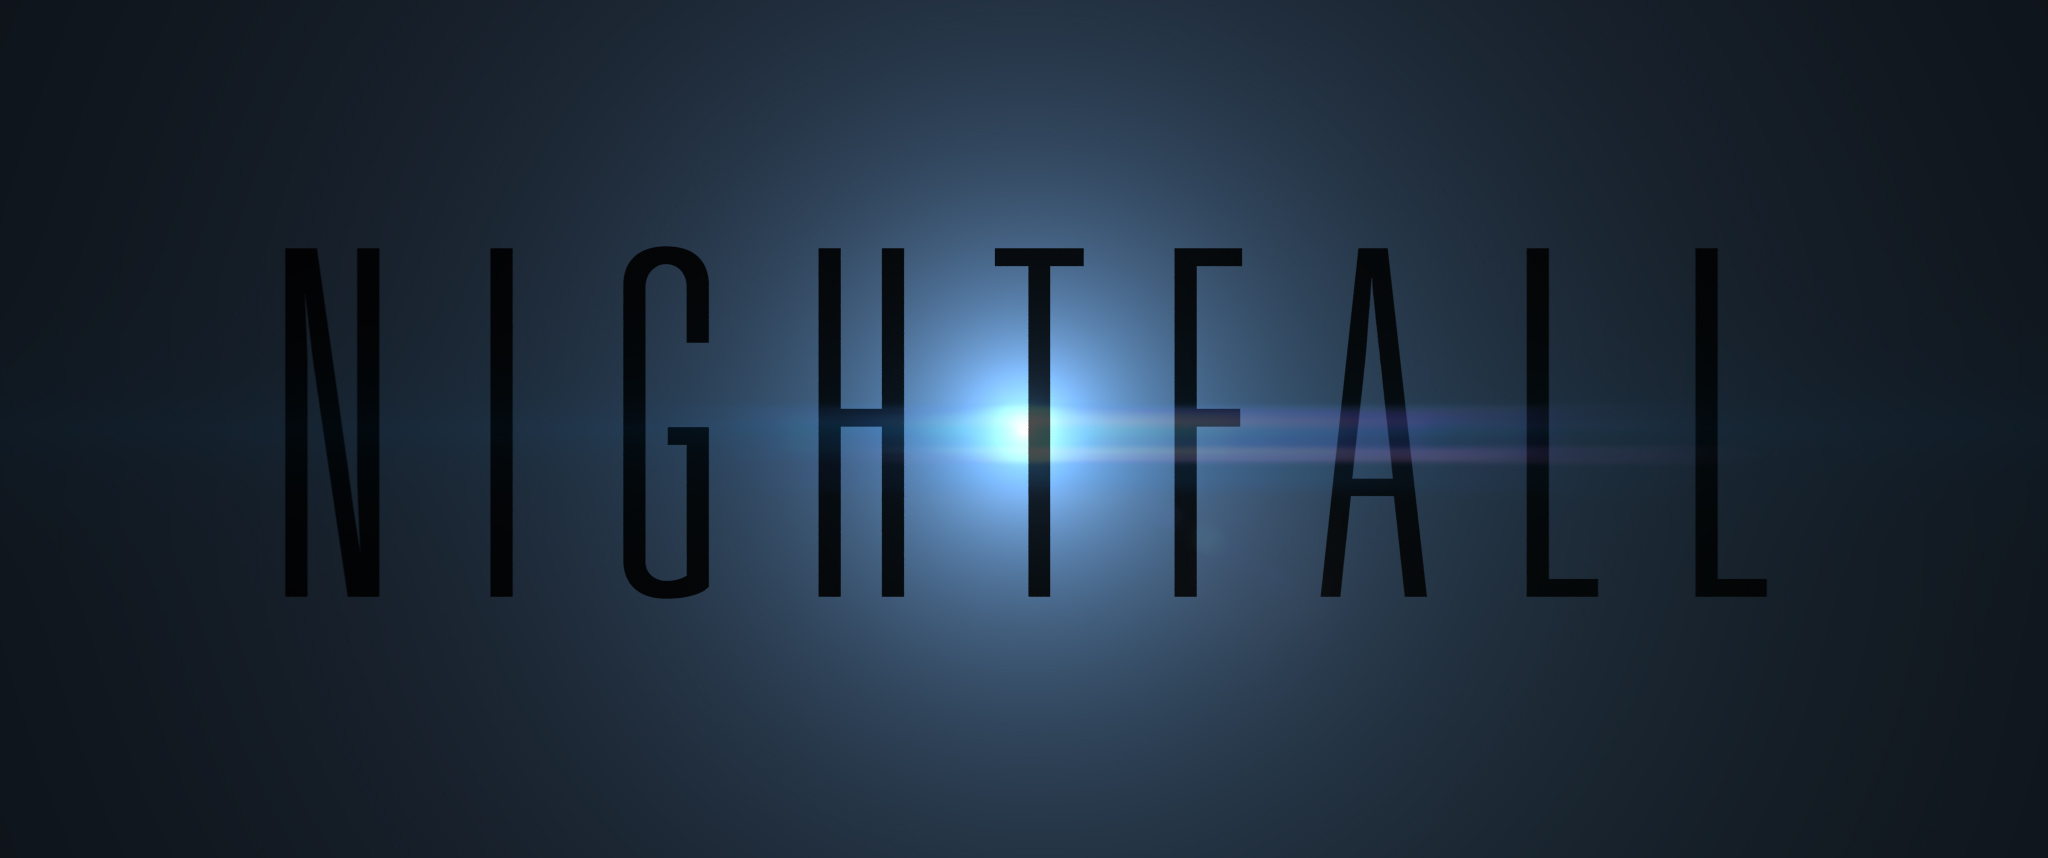 nightfall_logo